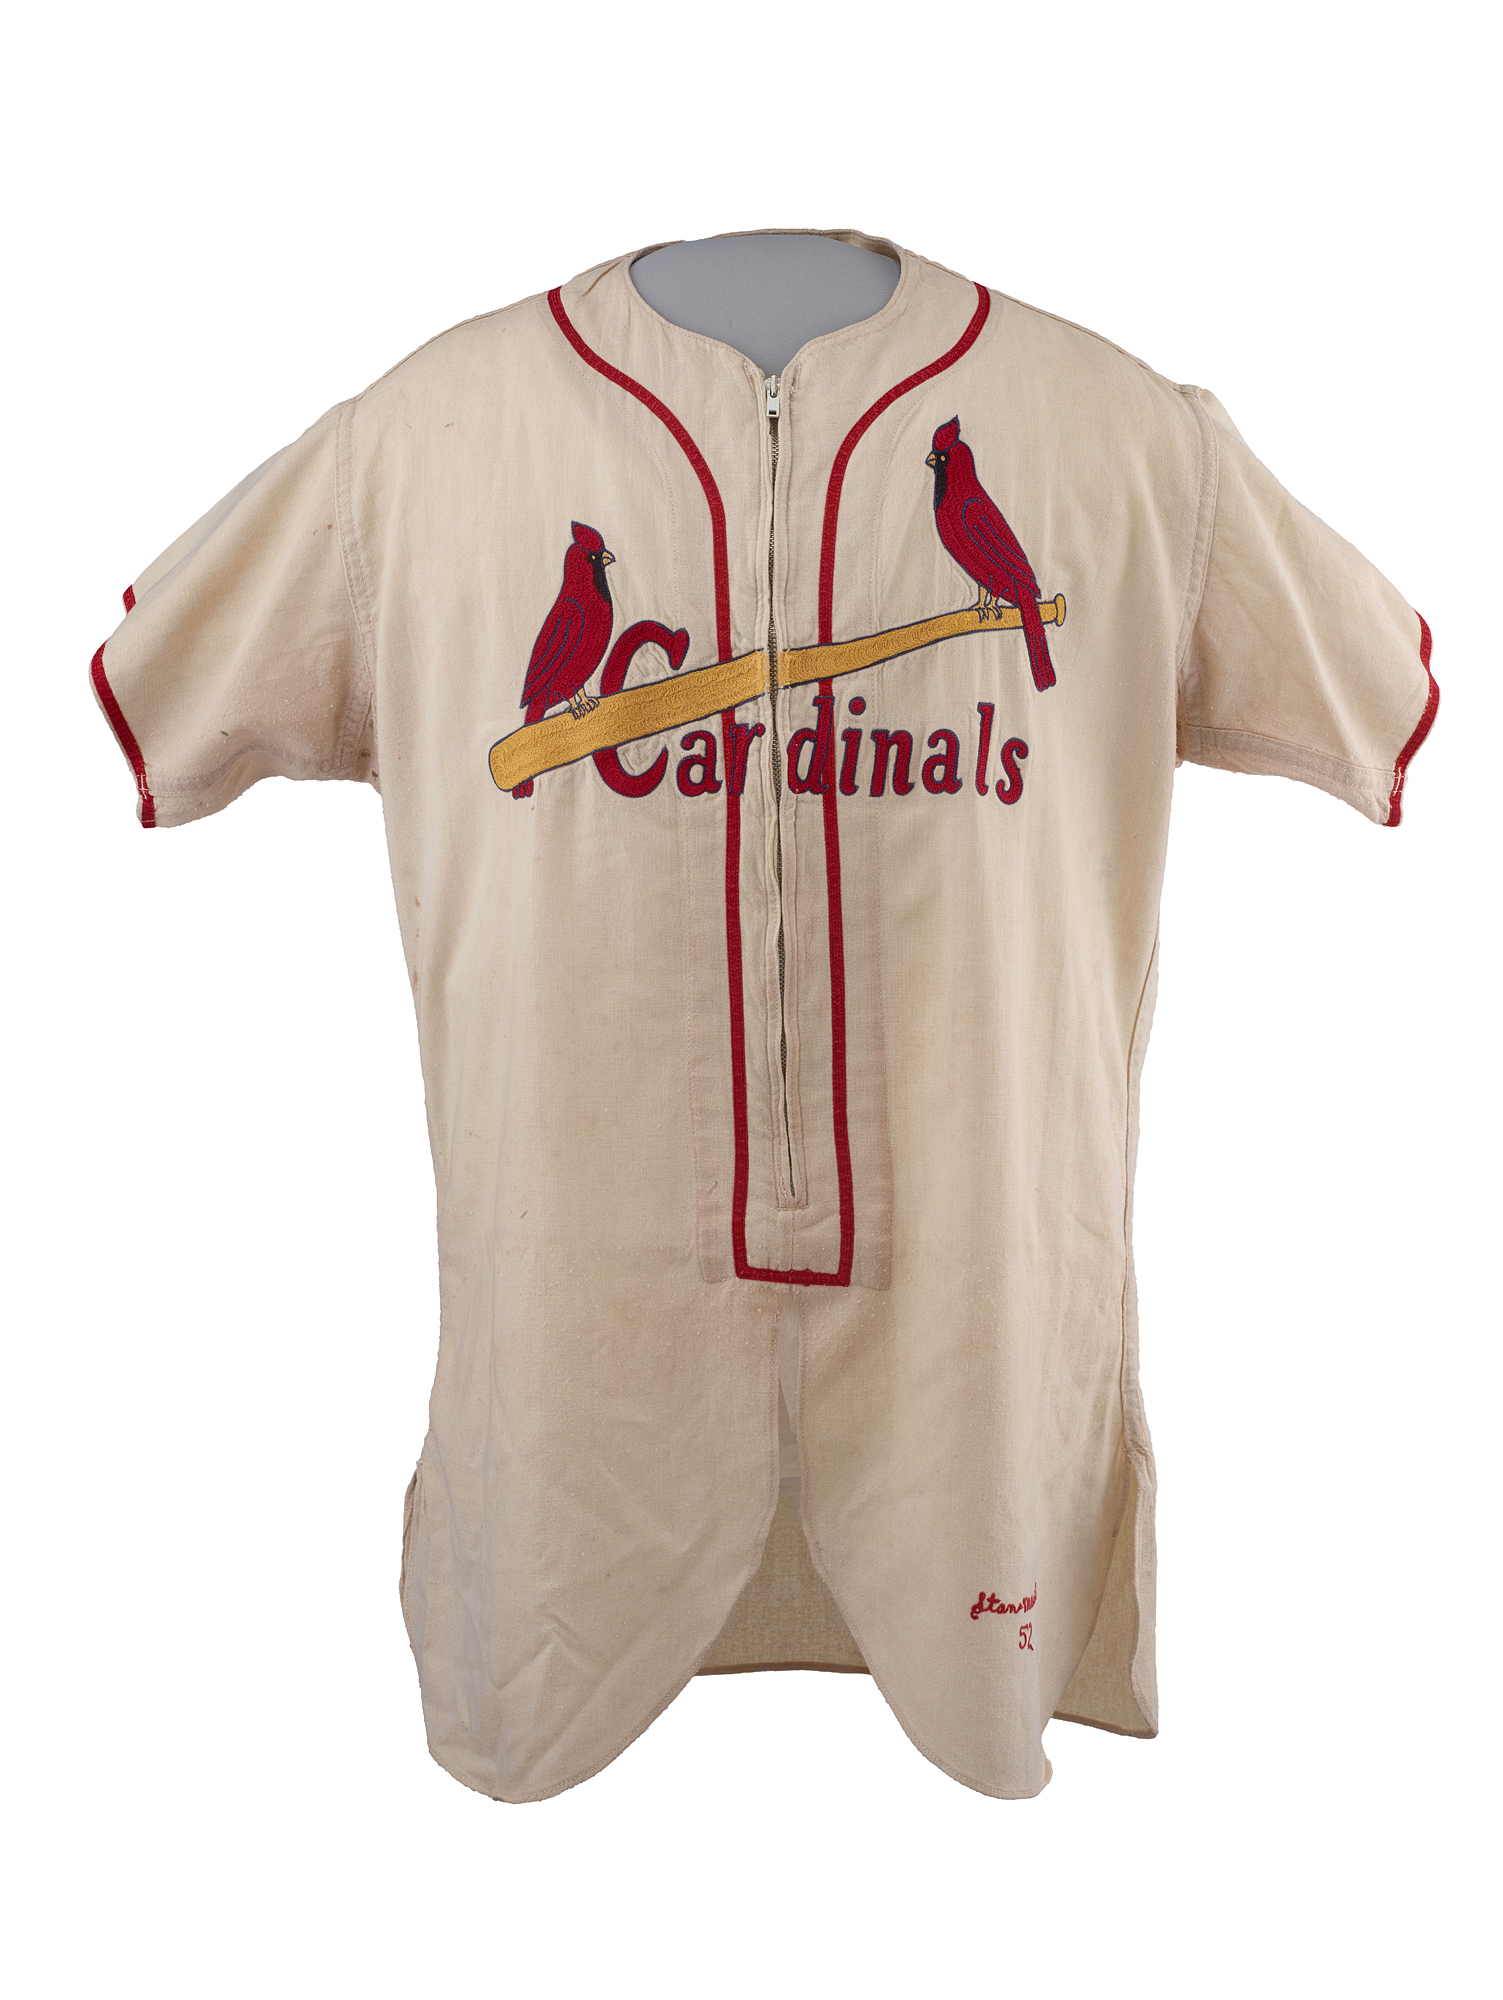 "White jersey that zippers down front with red text that says ""Cardinals."" Two cardinals sit on a baseball bat across the chest. Red detailing around arm."